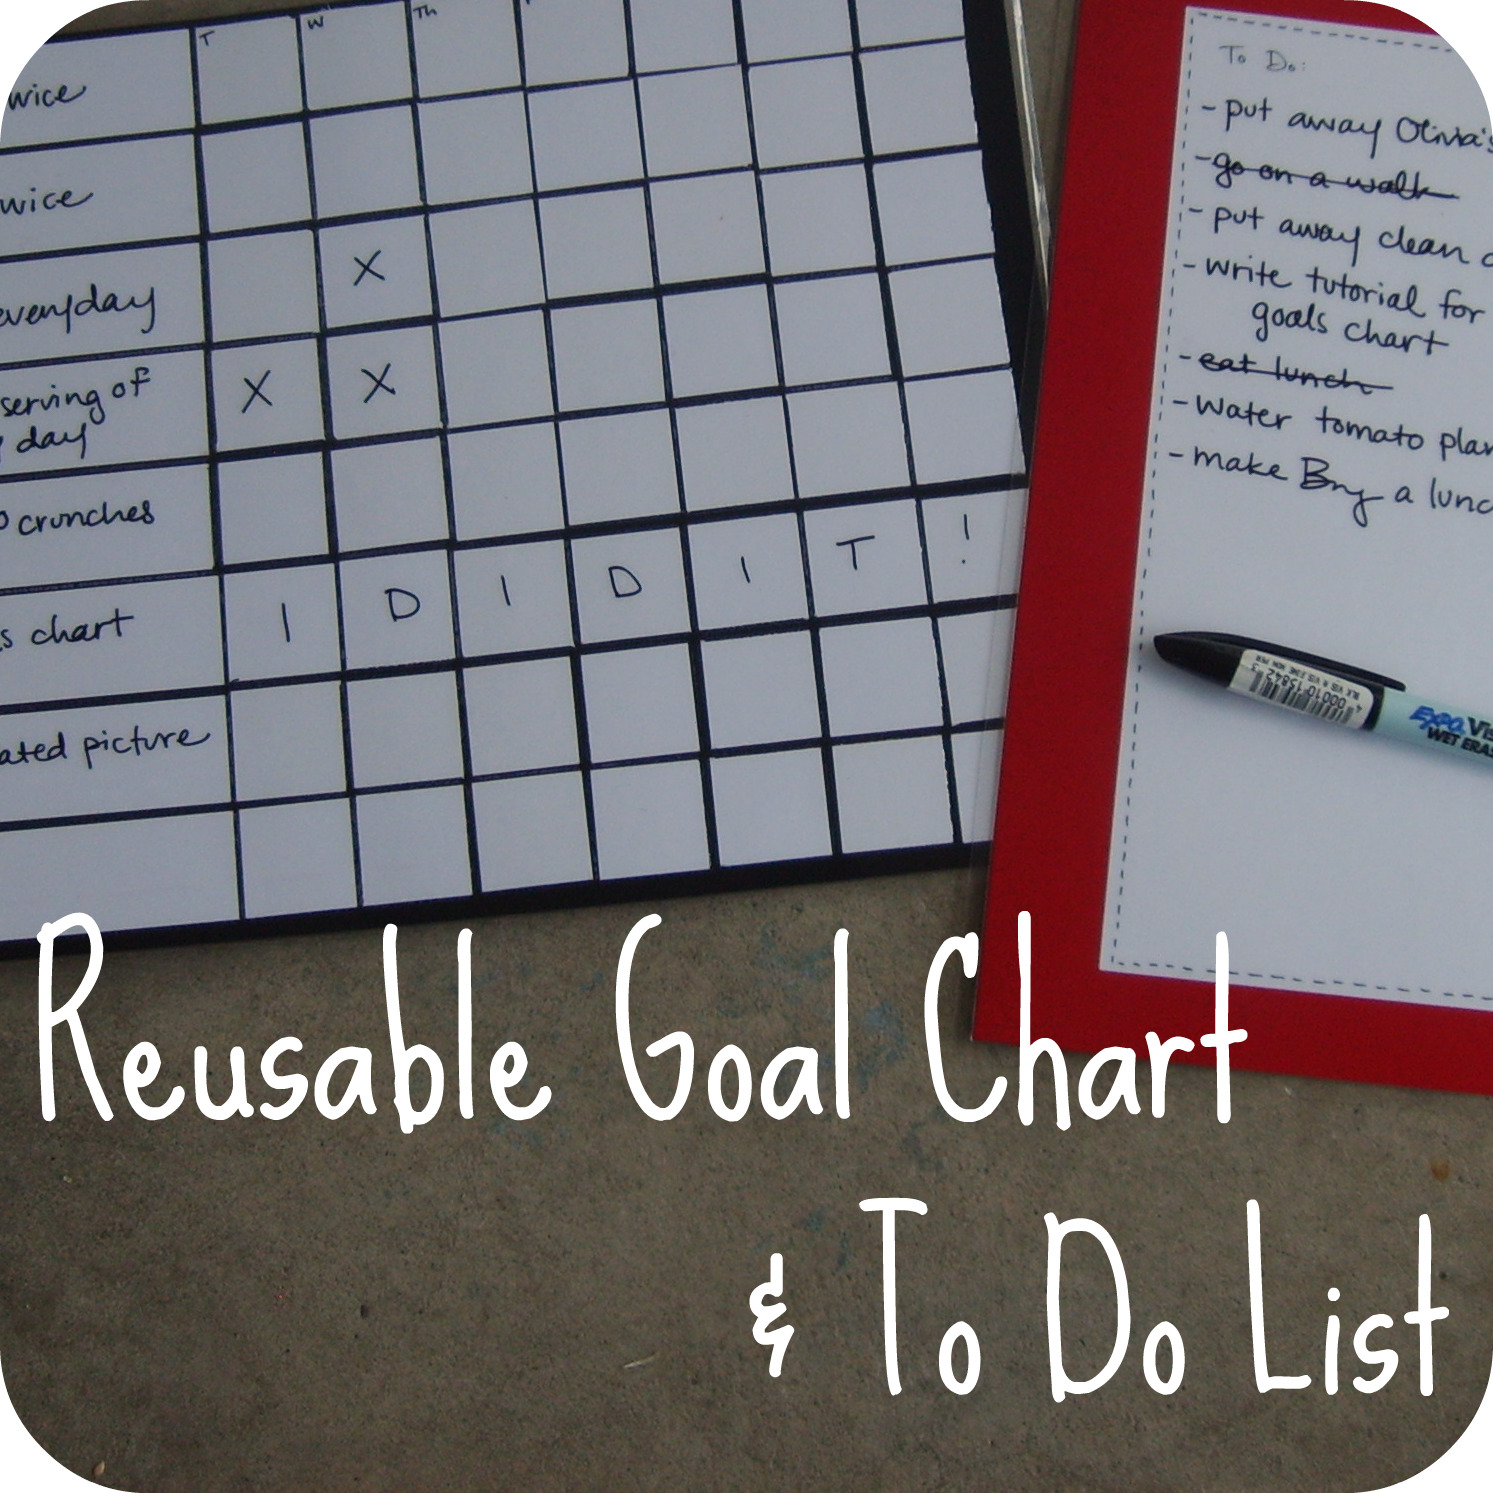 the red kitchen: Reusable Goals Chart & To Do List